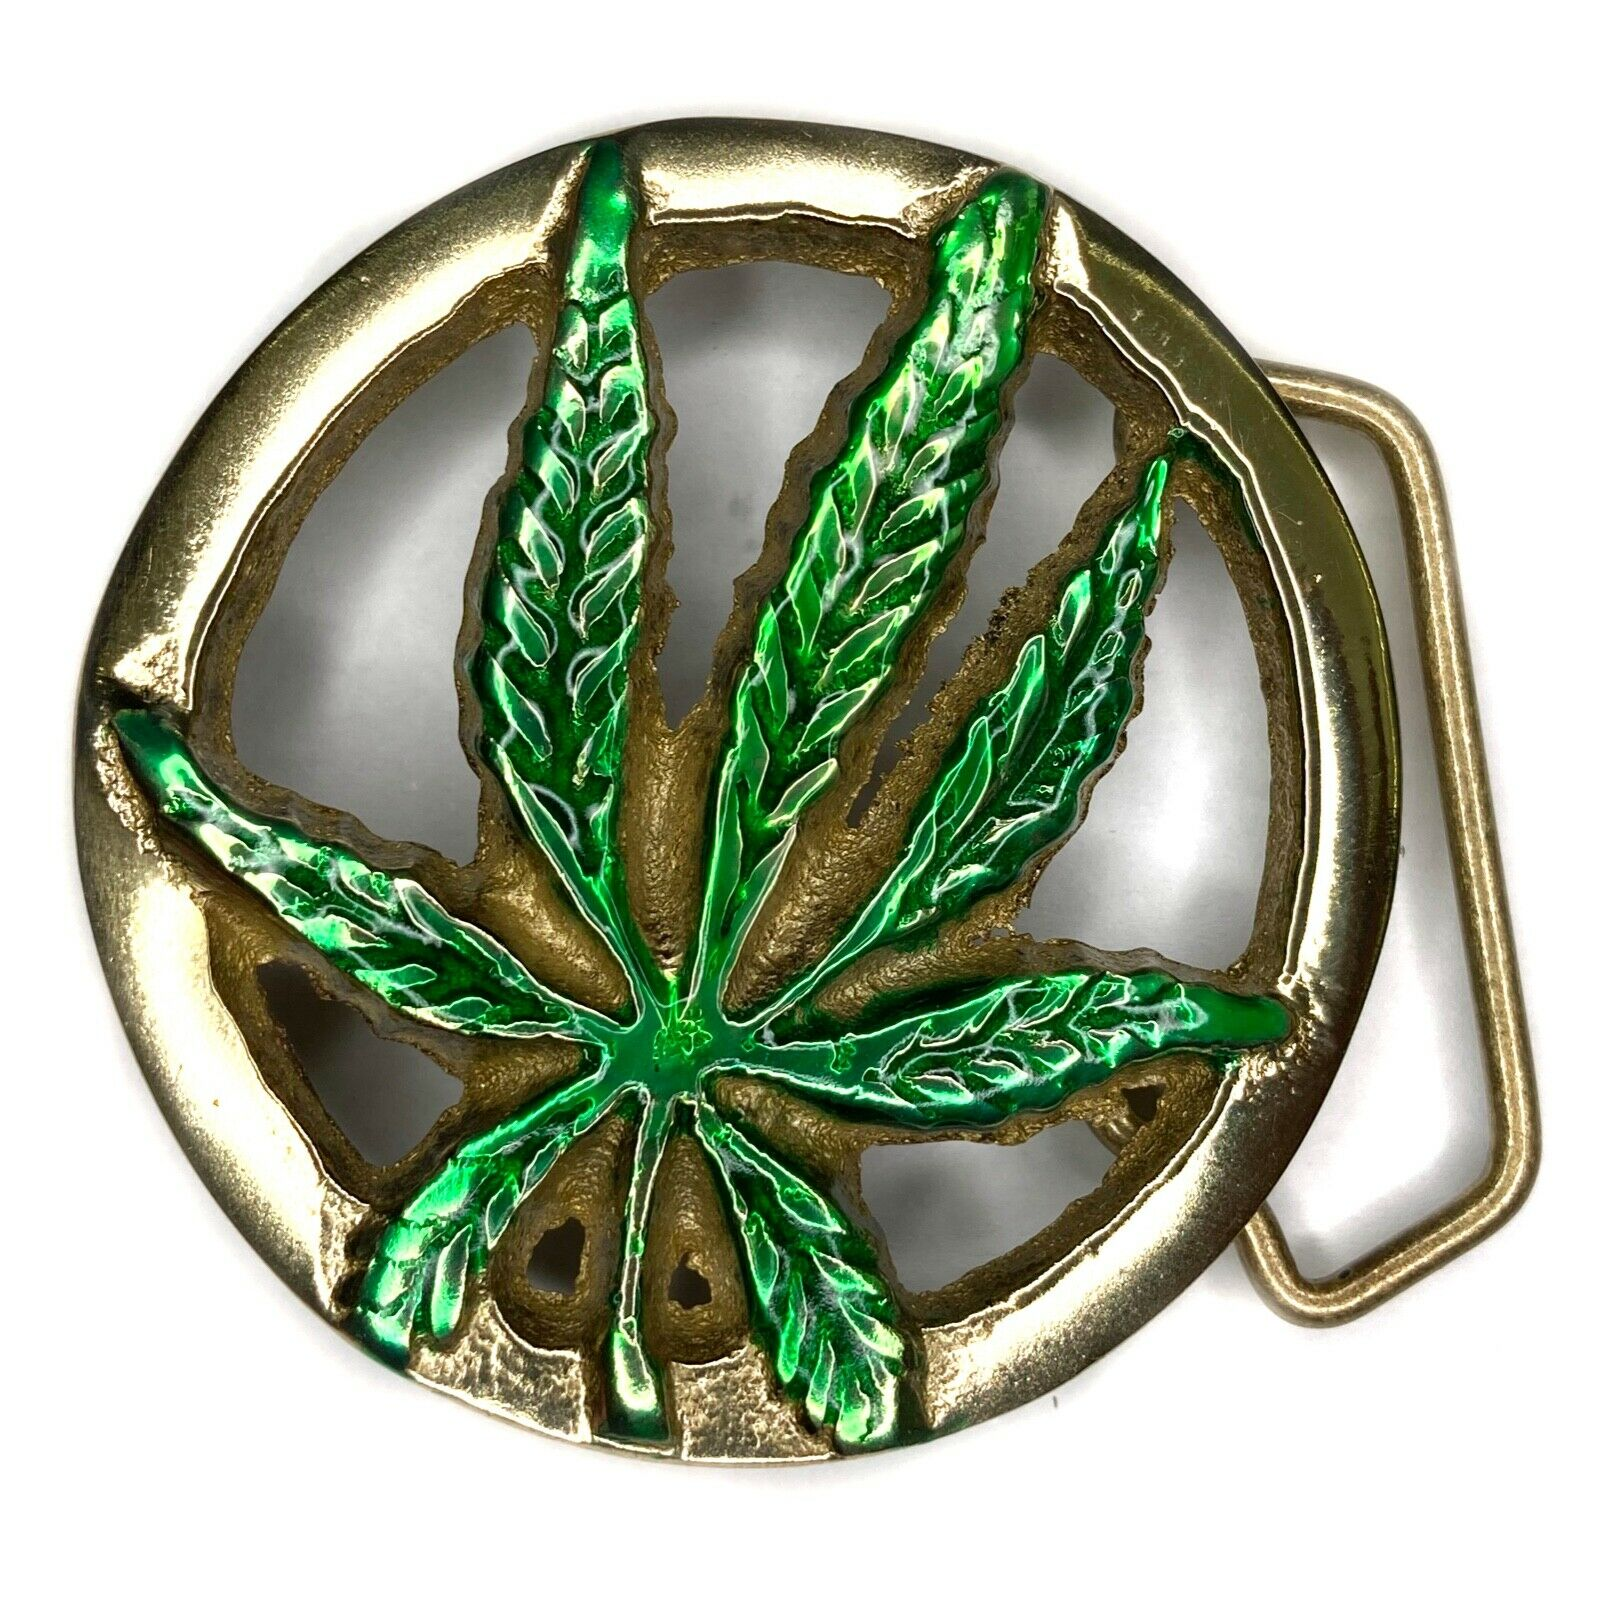 Marijuana/Cannabis Leaf Buckle and Belt, Brass, Smoking Plant Relax, Weed, Gift